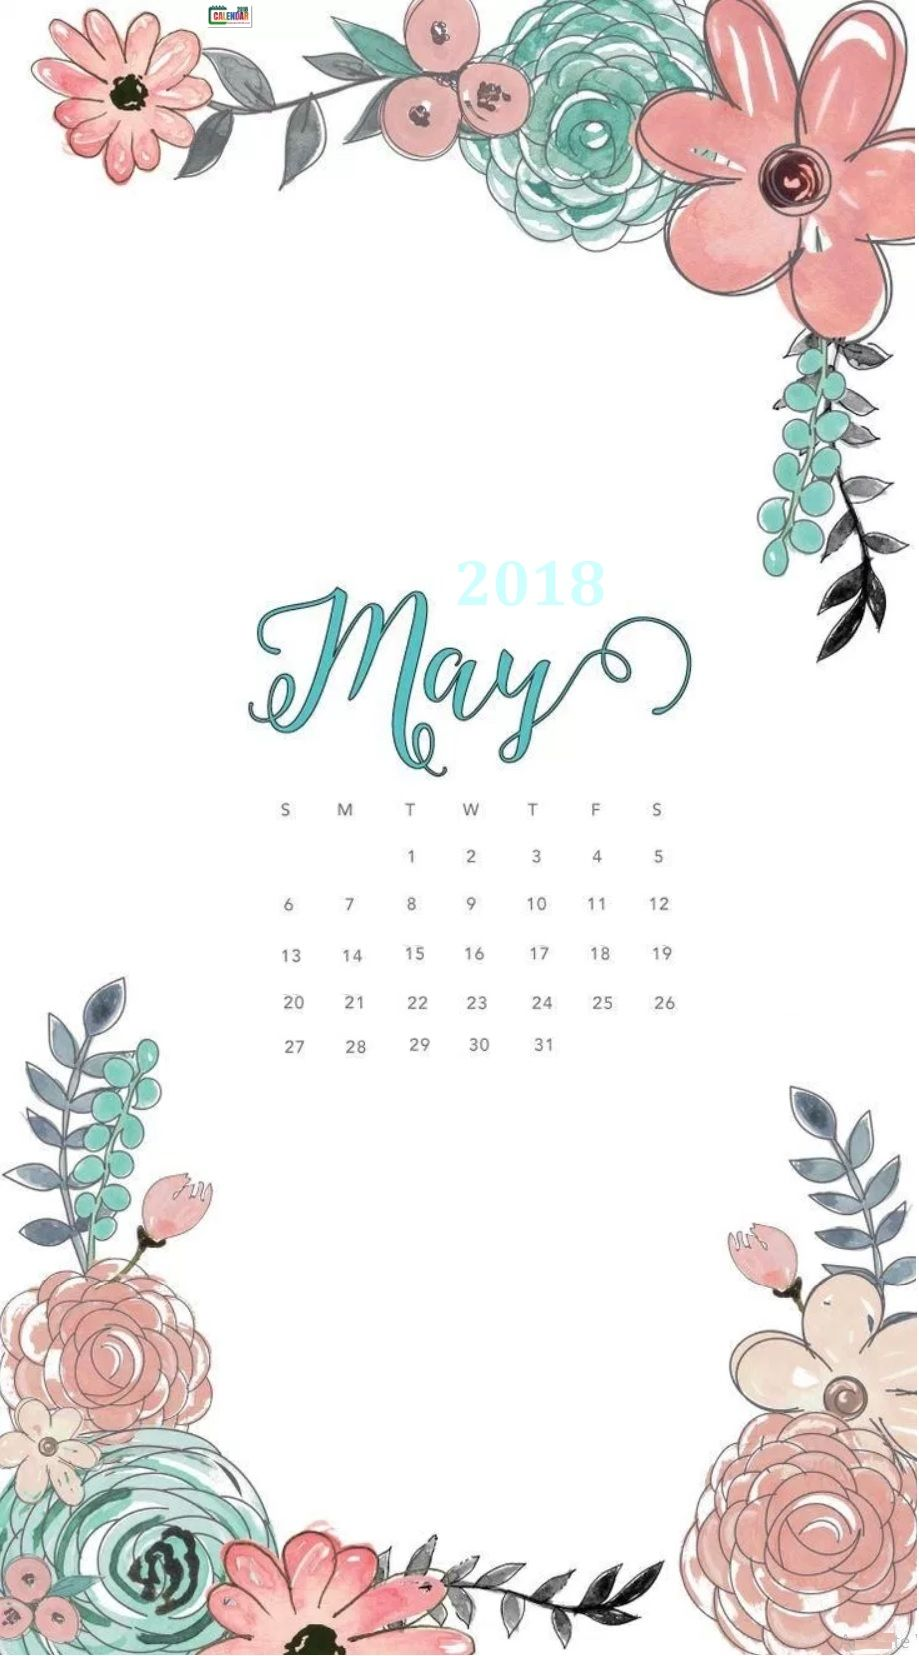 Calendar Wallpaper Originals : Hello may calendar wallpaper wallpapers pinterest